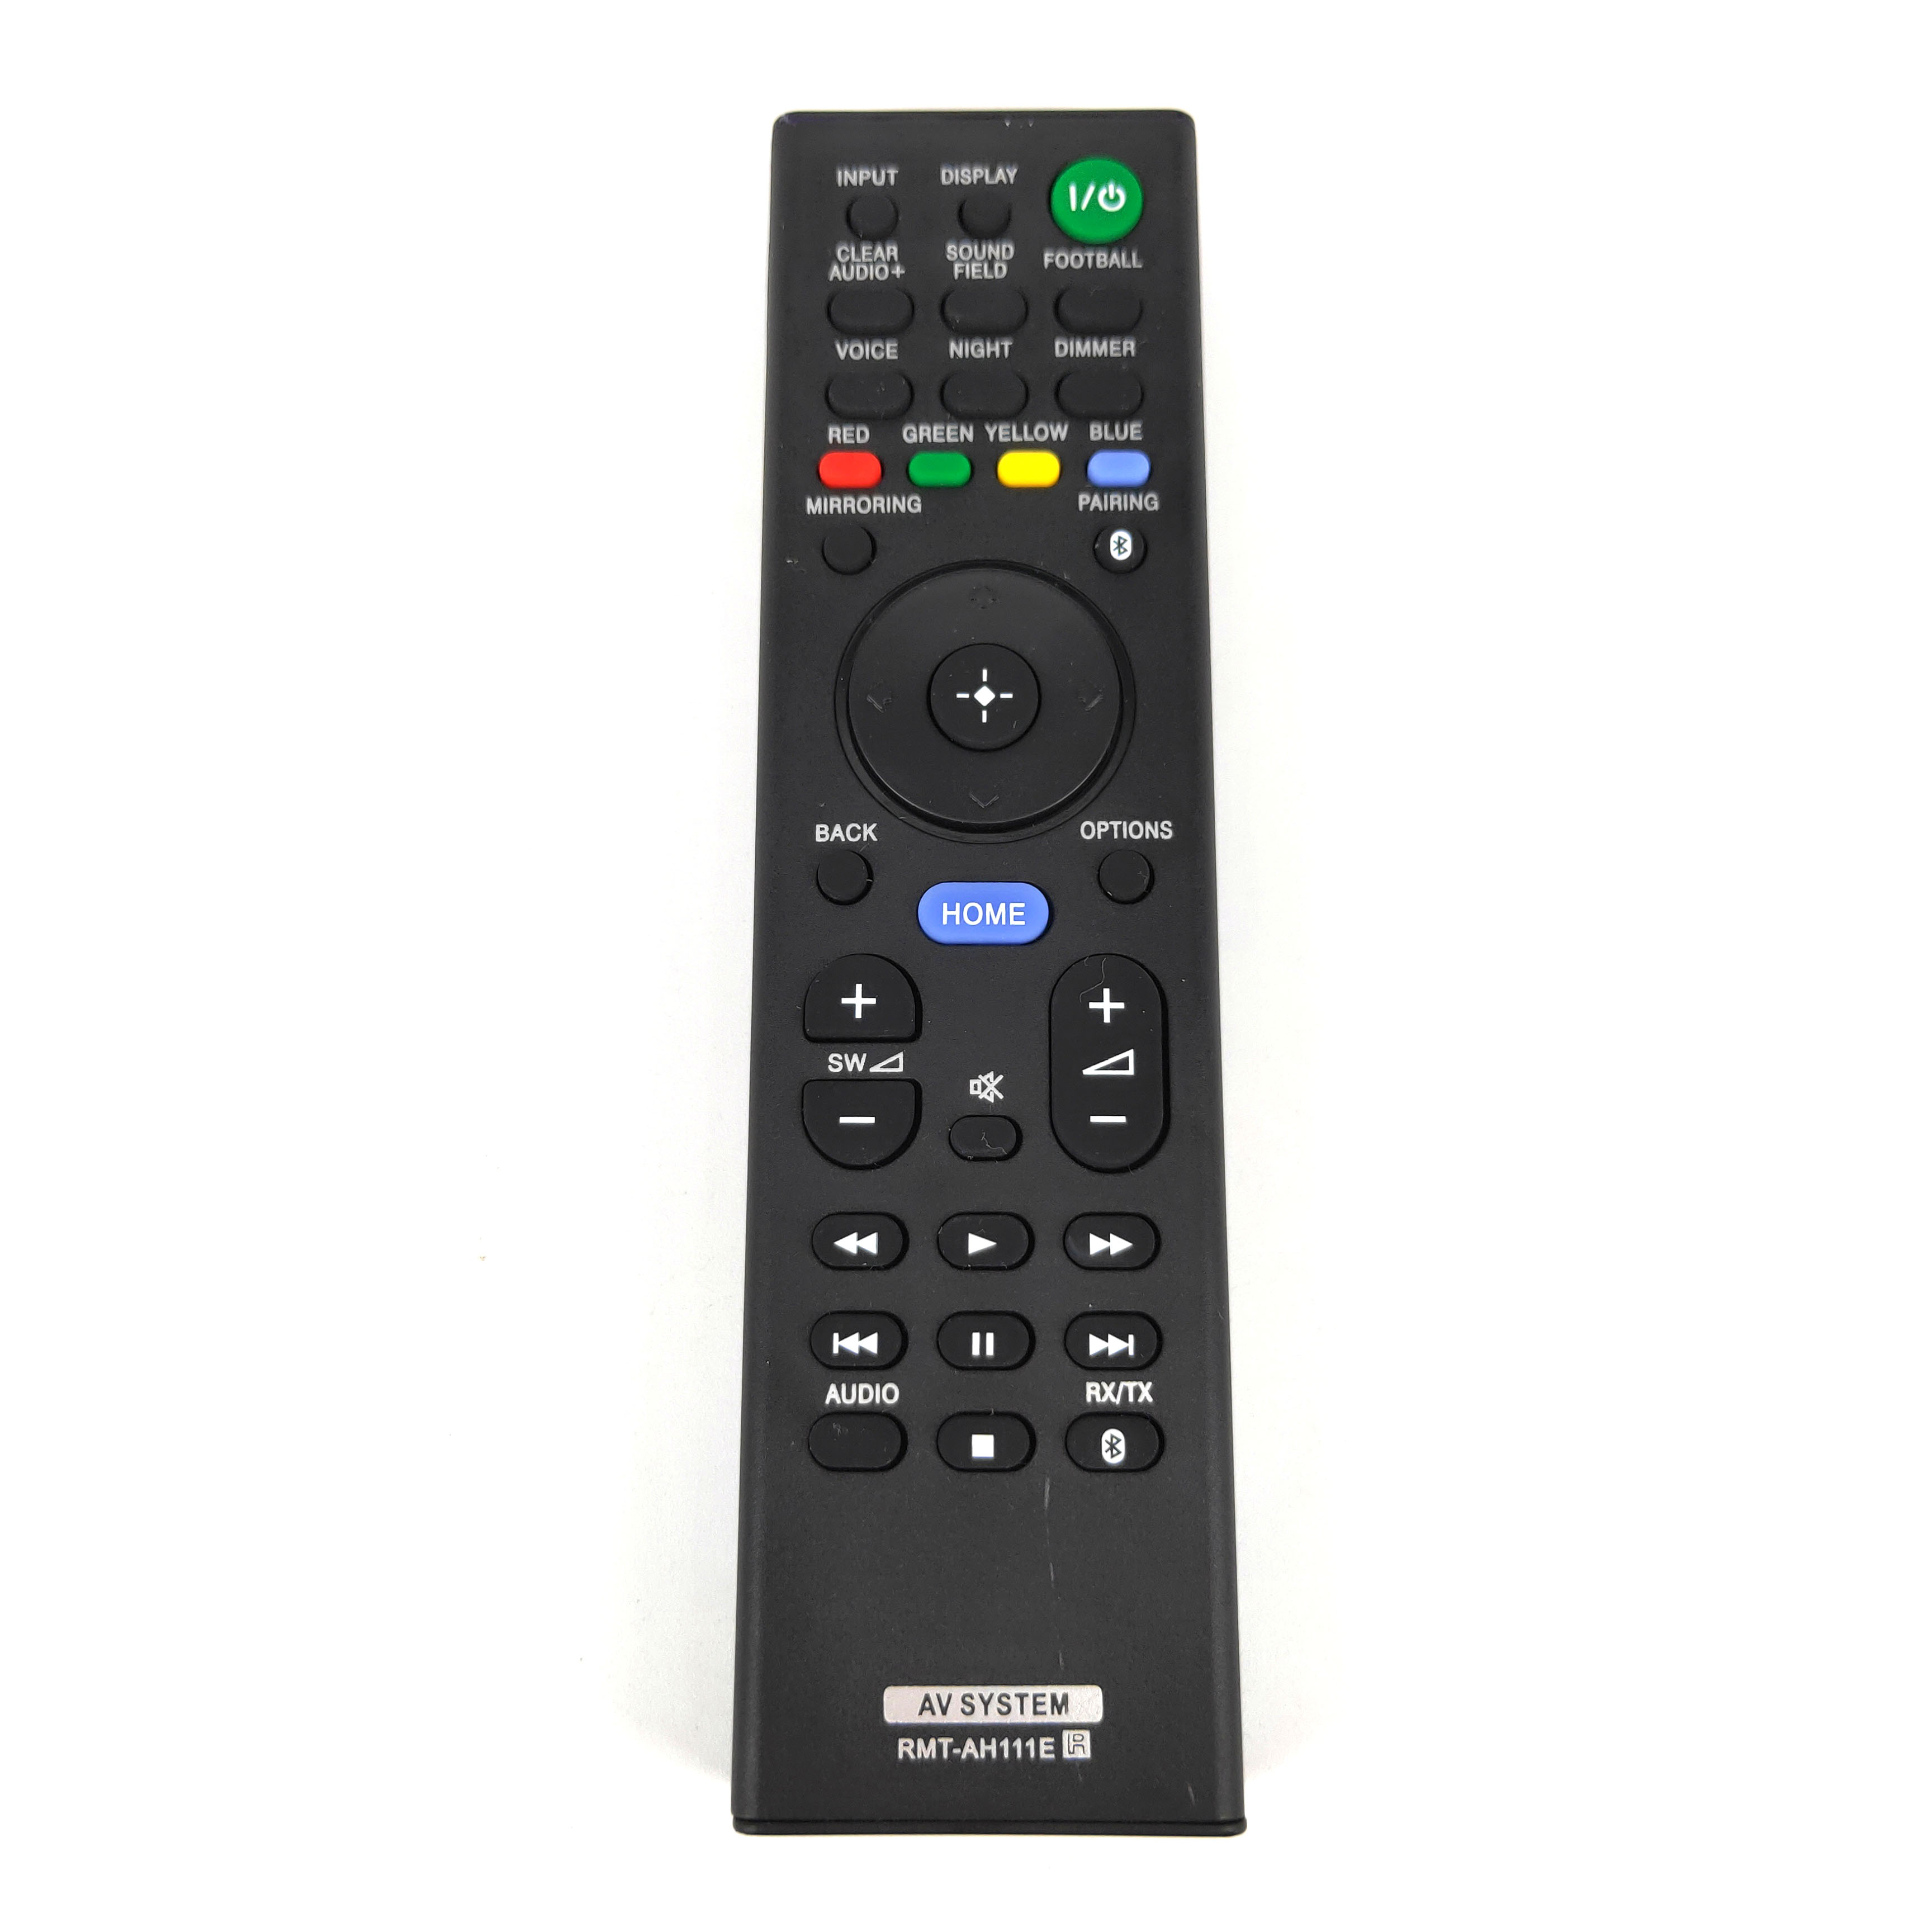 NEW RMT-AH111E for Sony Sound bar Home Theatre System Remote Control for HT-ST5 HT-XT1 HT-CT290 HT-CT291 HT-NT3 SA-CT390